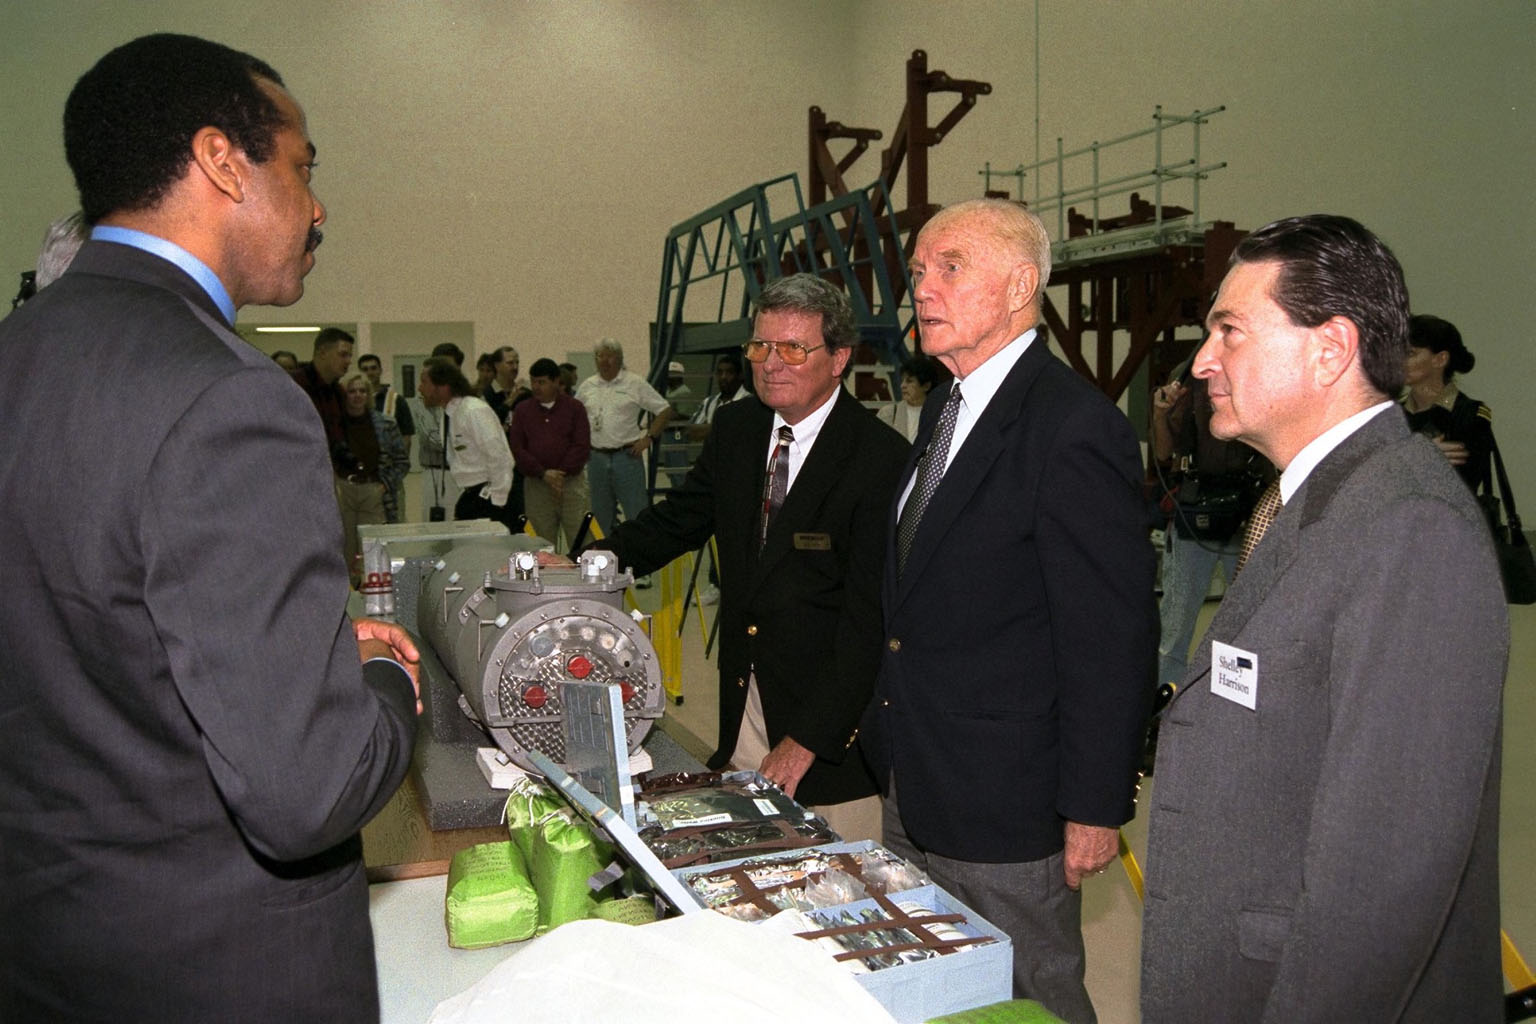 Ohio Senator John Glenn, second from right, enjoys a tour of the SPACEHAB Payload Processing Facility in Cape Canaveral. Joining Senator Glenn are, left to right, Dr. Bernard Harris, SPACEHAB vice president, microgravity and life sciences; Dale Steffey, SPACEHAB vice president, operations; and Dr. Shelley Harrison, SPACEHAB chairman and chief executive officer. Senator Glenn arrived at KSC on Jan. 20 to tour KSC operational areas and to view the launch of STS-89 later this week. Glenn, who made history in 1962 as the first American to orbit the Earth, completing three orbits in a five-hour flight aboard Friendship 7, will fly his second space mission aboard Space Shuttle Discovery this October. Glenn is retiring from the Senate at the end of this year and will be a payload specialist aboard STS-95